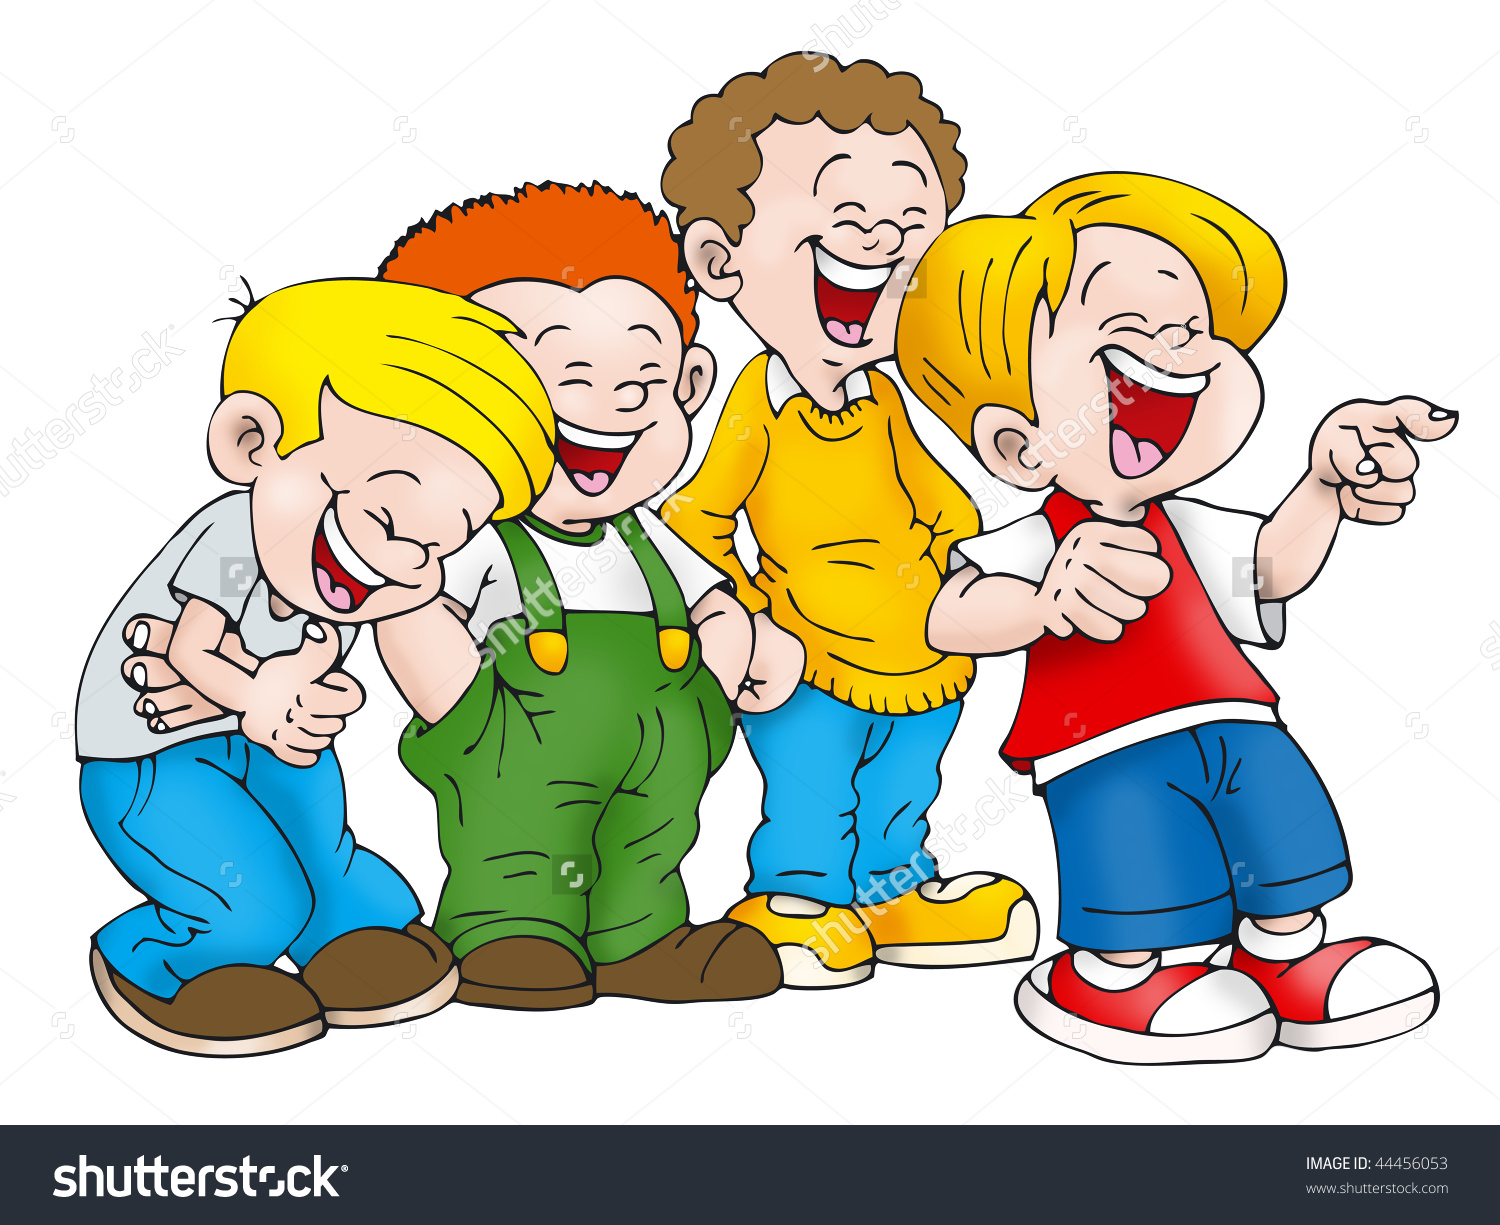 Laughter Clipart-laughter clipart-15